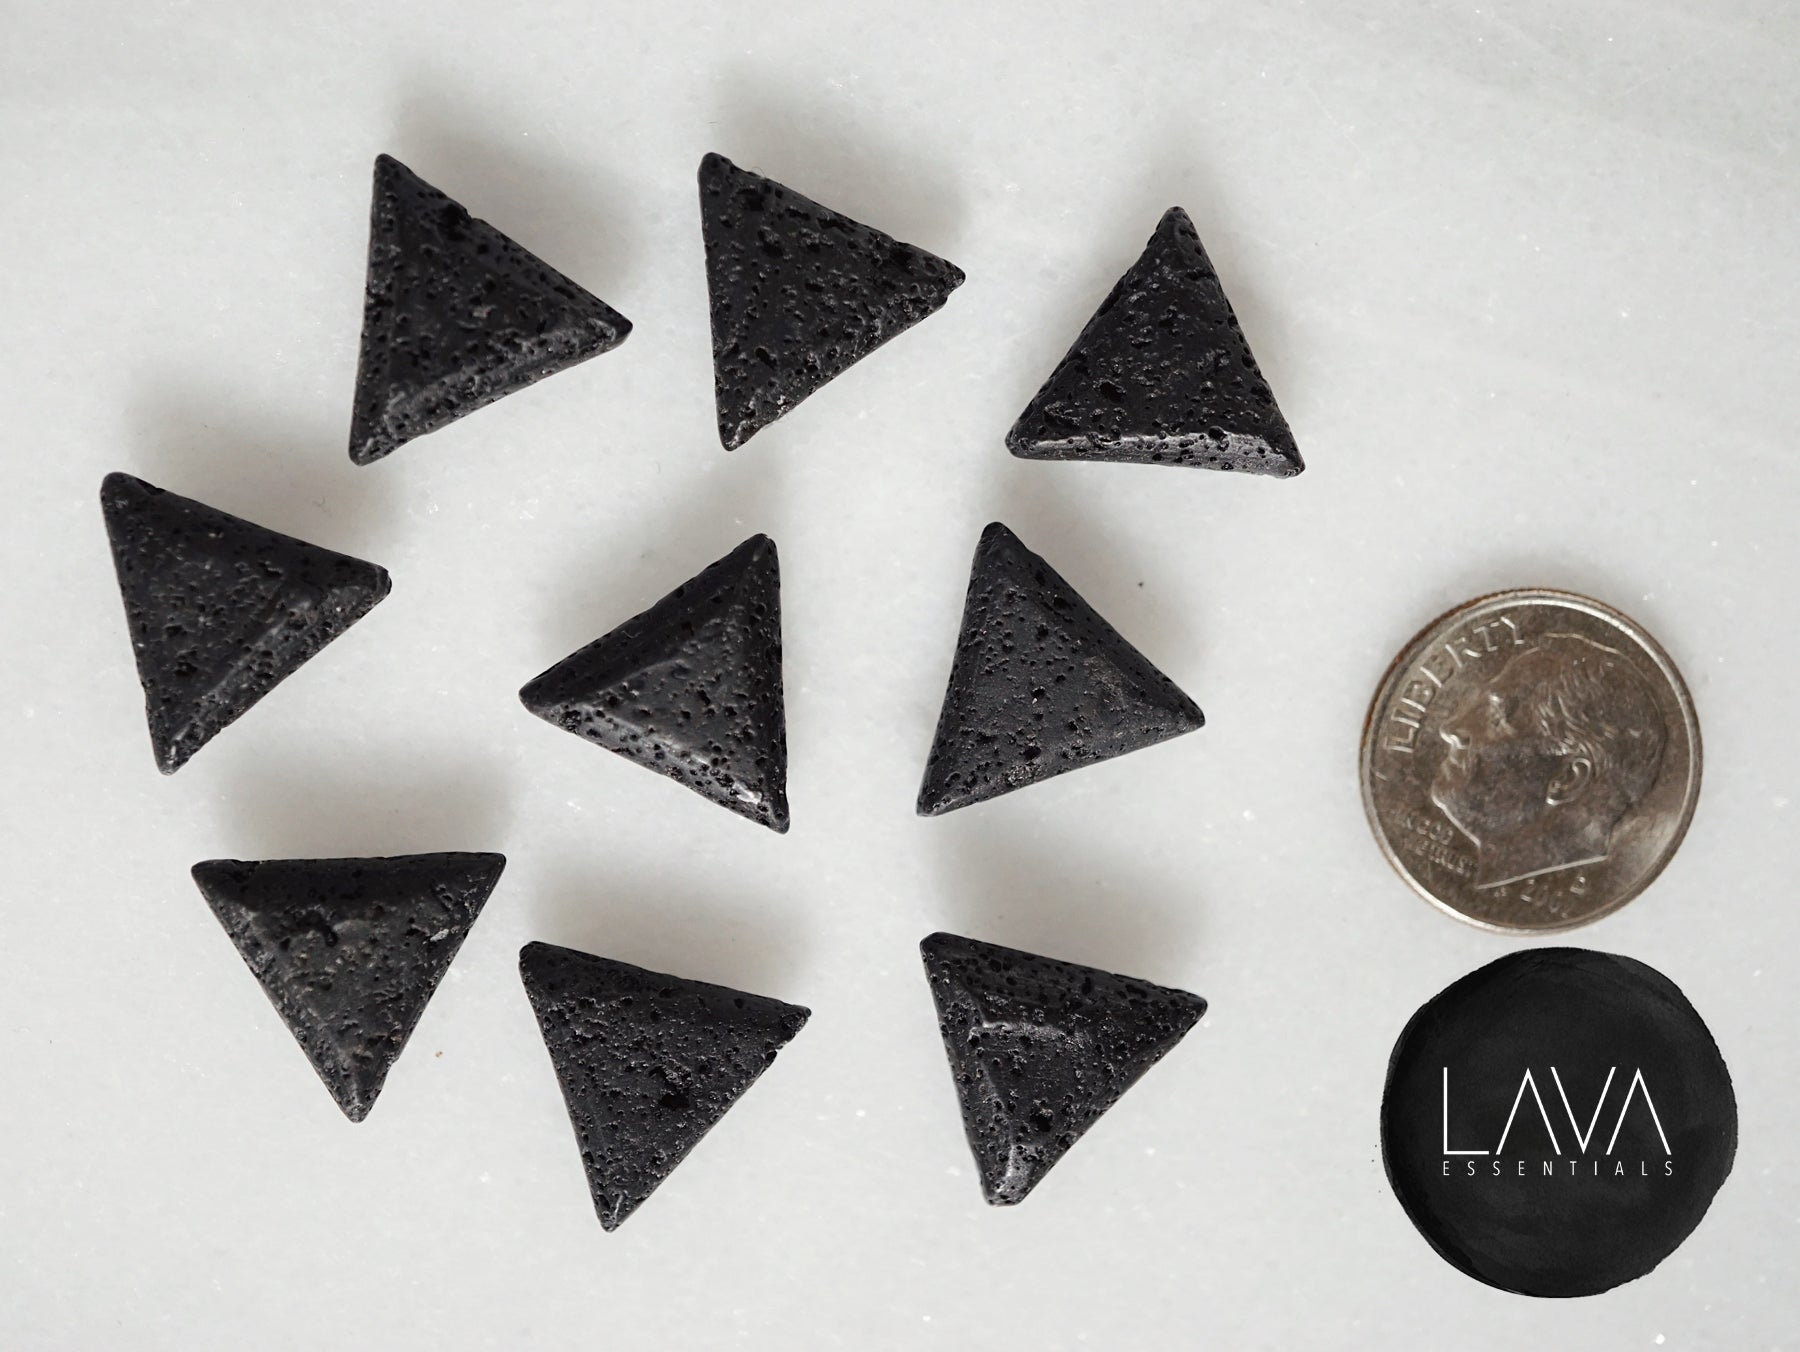 NEW Minimalist Lava Triangle Essential Oil Diffuser Necklace [G]+[S]+[RG] - Lava Essential Oils